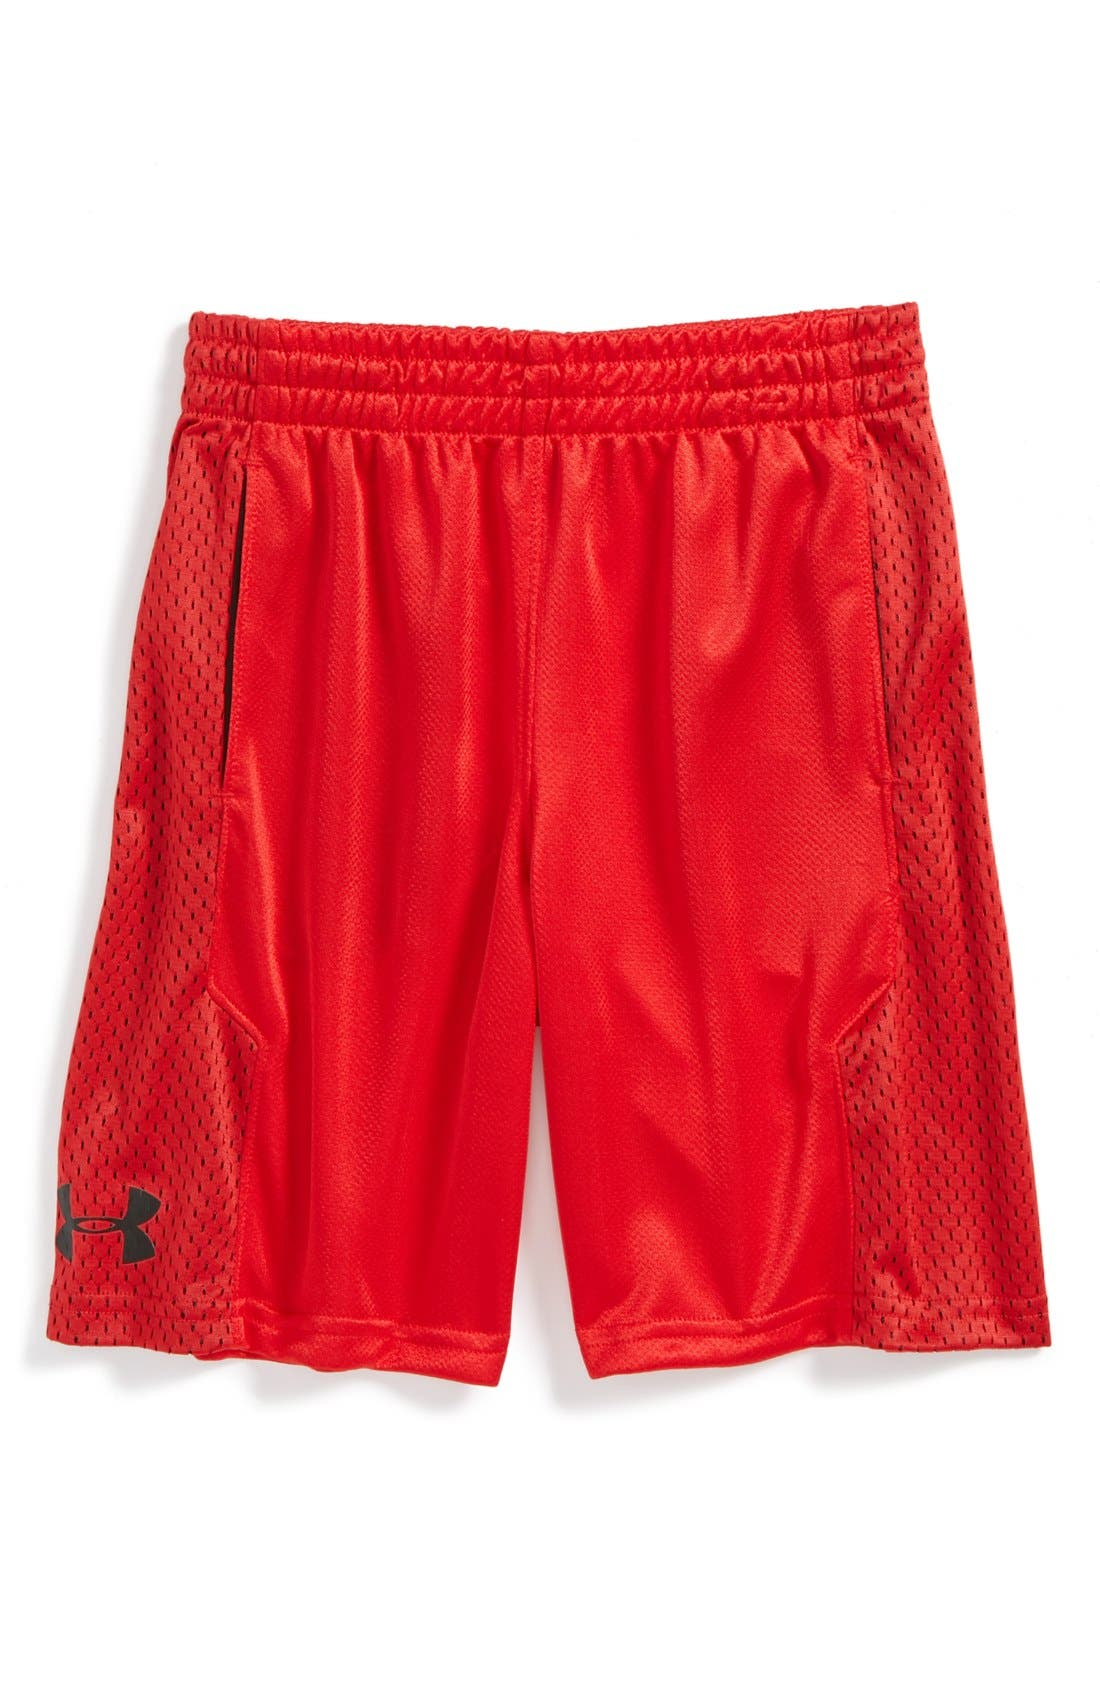 Main Image - Under Armour 'Awesomeness' HeatGear® Shorts (Little Boys)